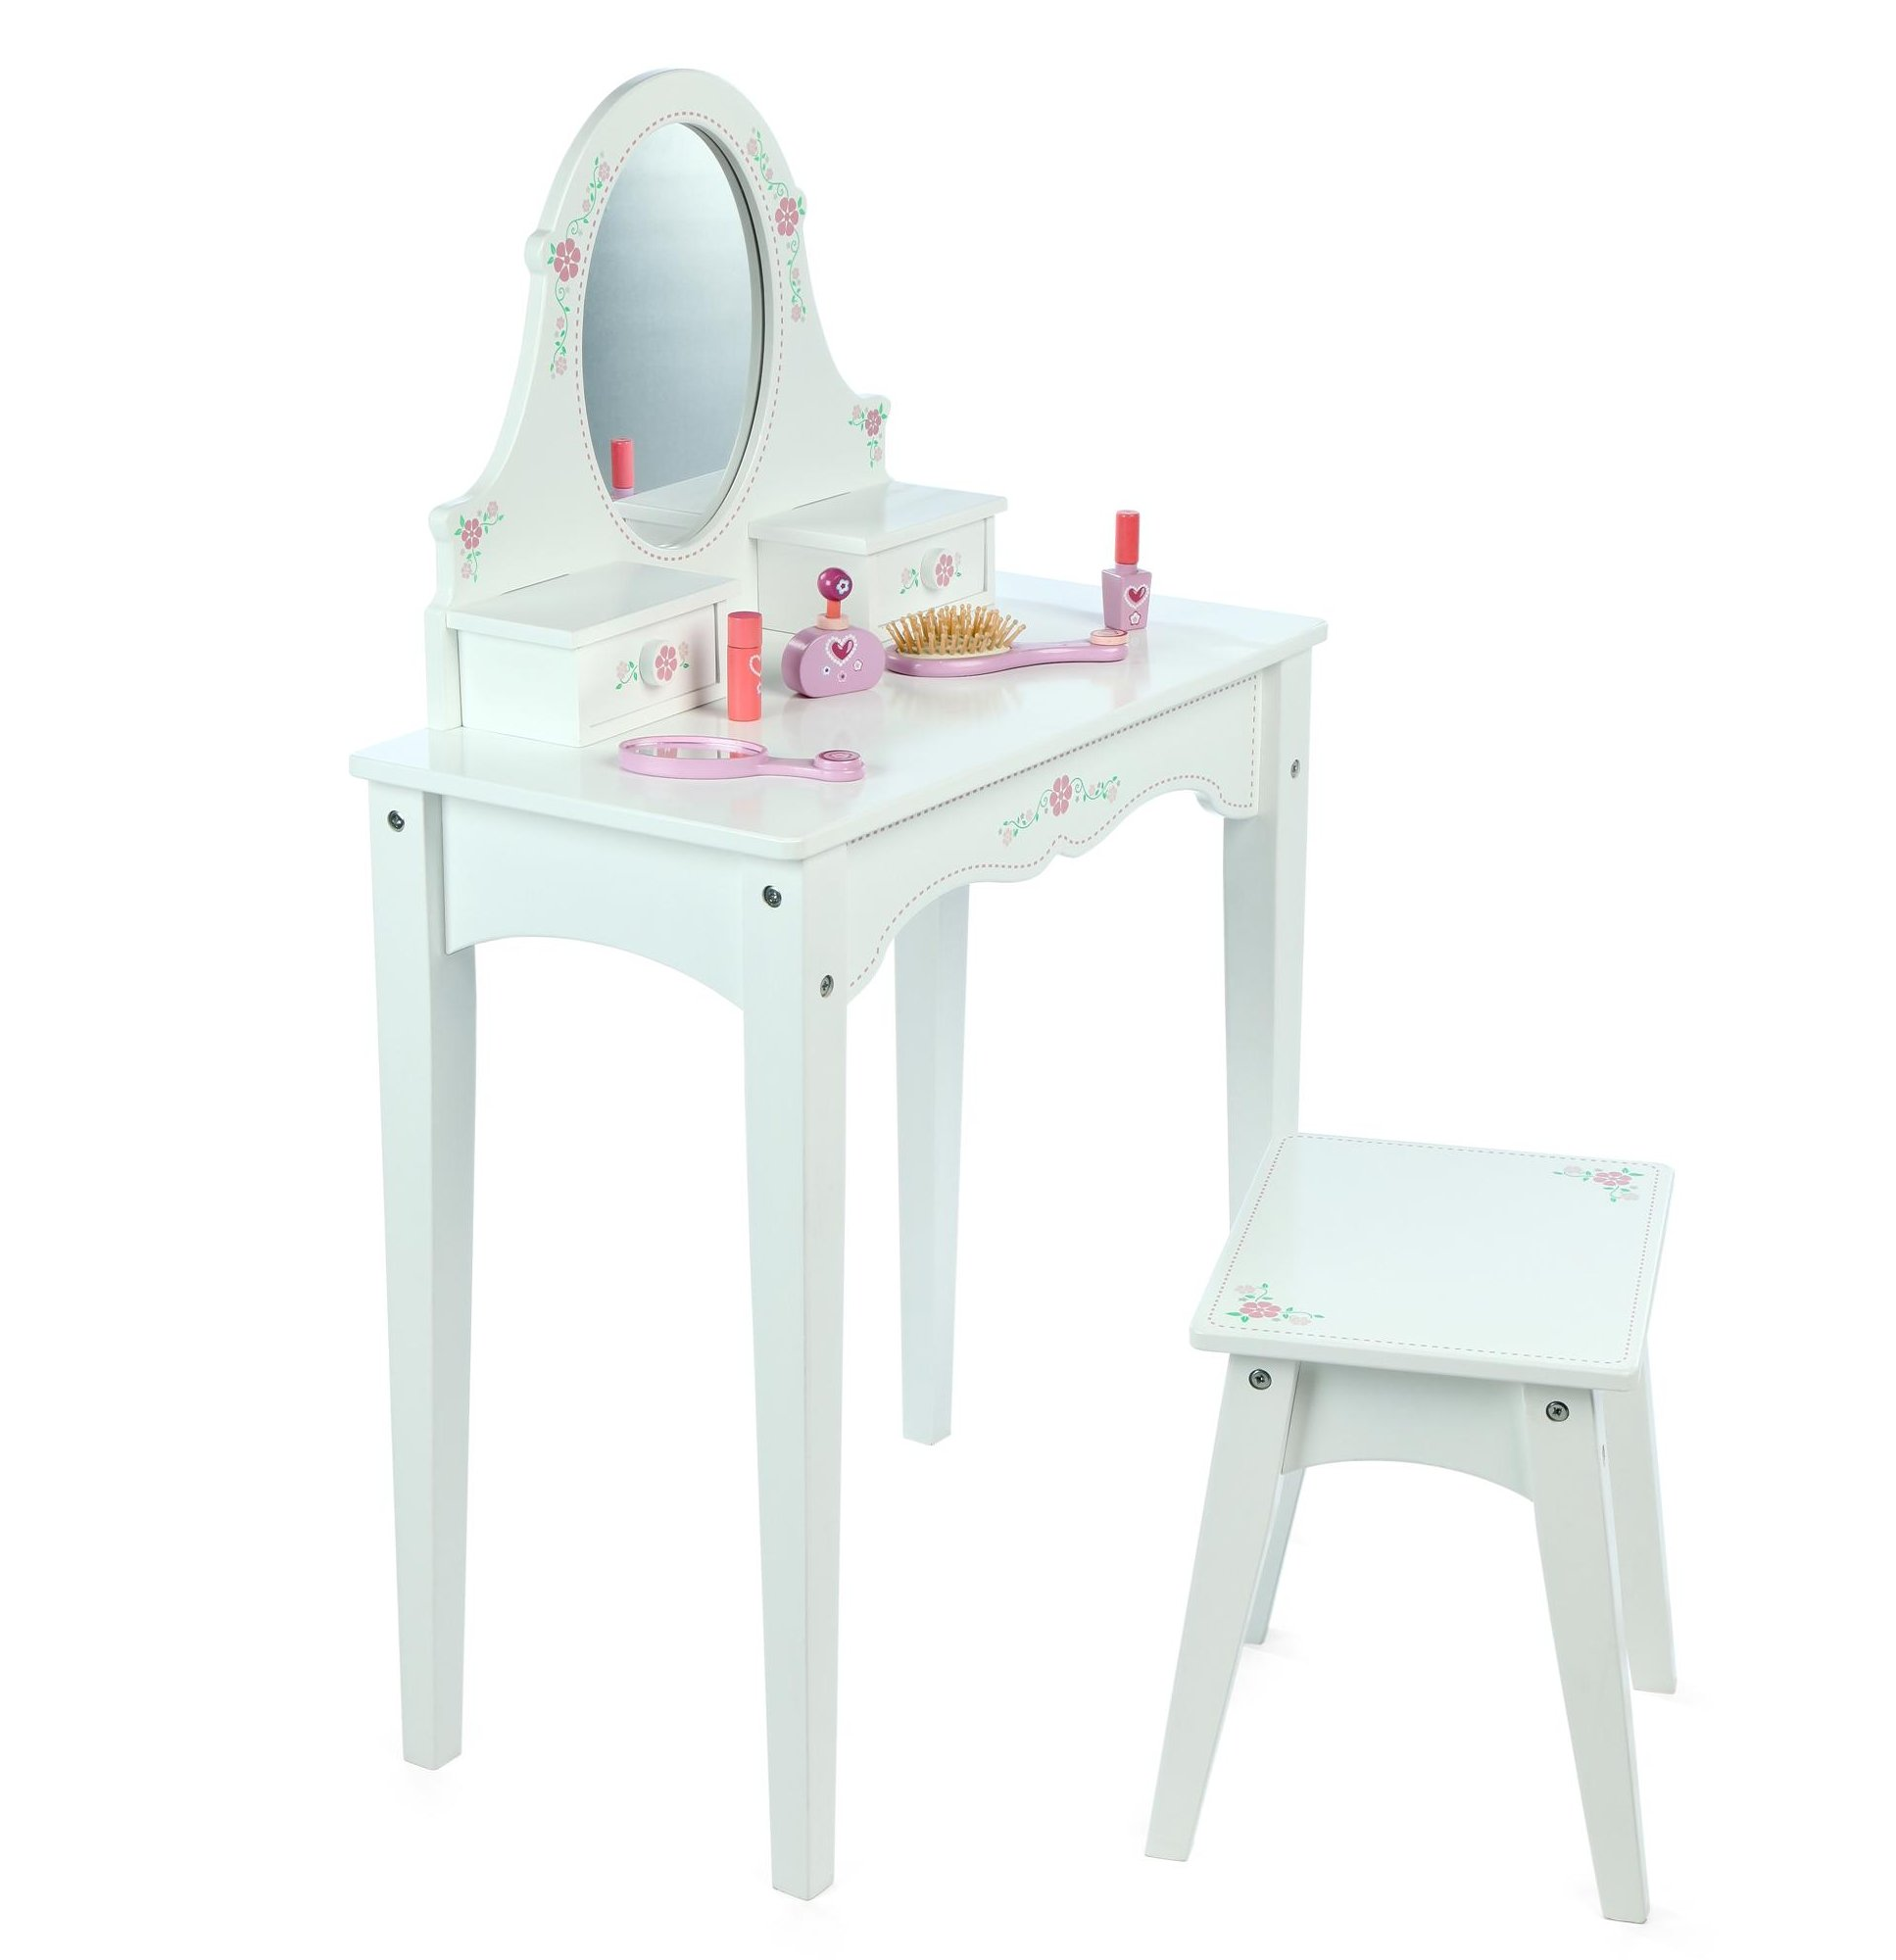 Tiffany Dressing Table Amp Stool Set For Children In S A